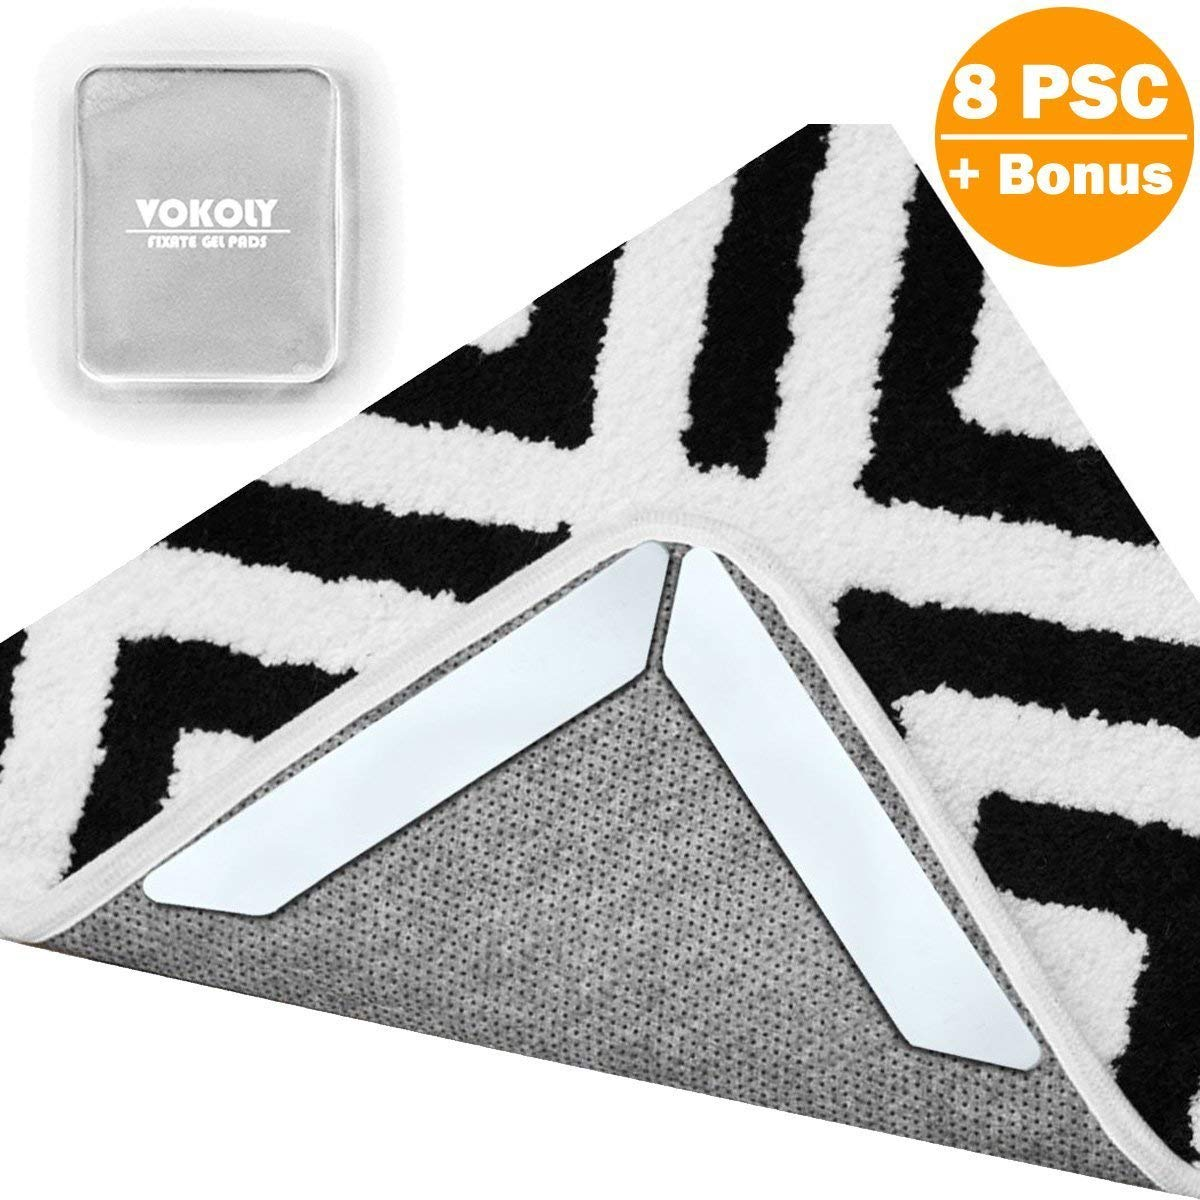 Rug Gripper Non Slip Rug Pad,VOKOLY 8 PCS Removable and Reusable Carpet Gripper Pad Keeps Rugs in Place and Corners Flat, Double Sided Tape Ideal Rug Stopper Work for Indoor, Outdoor Carpet–Washable